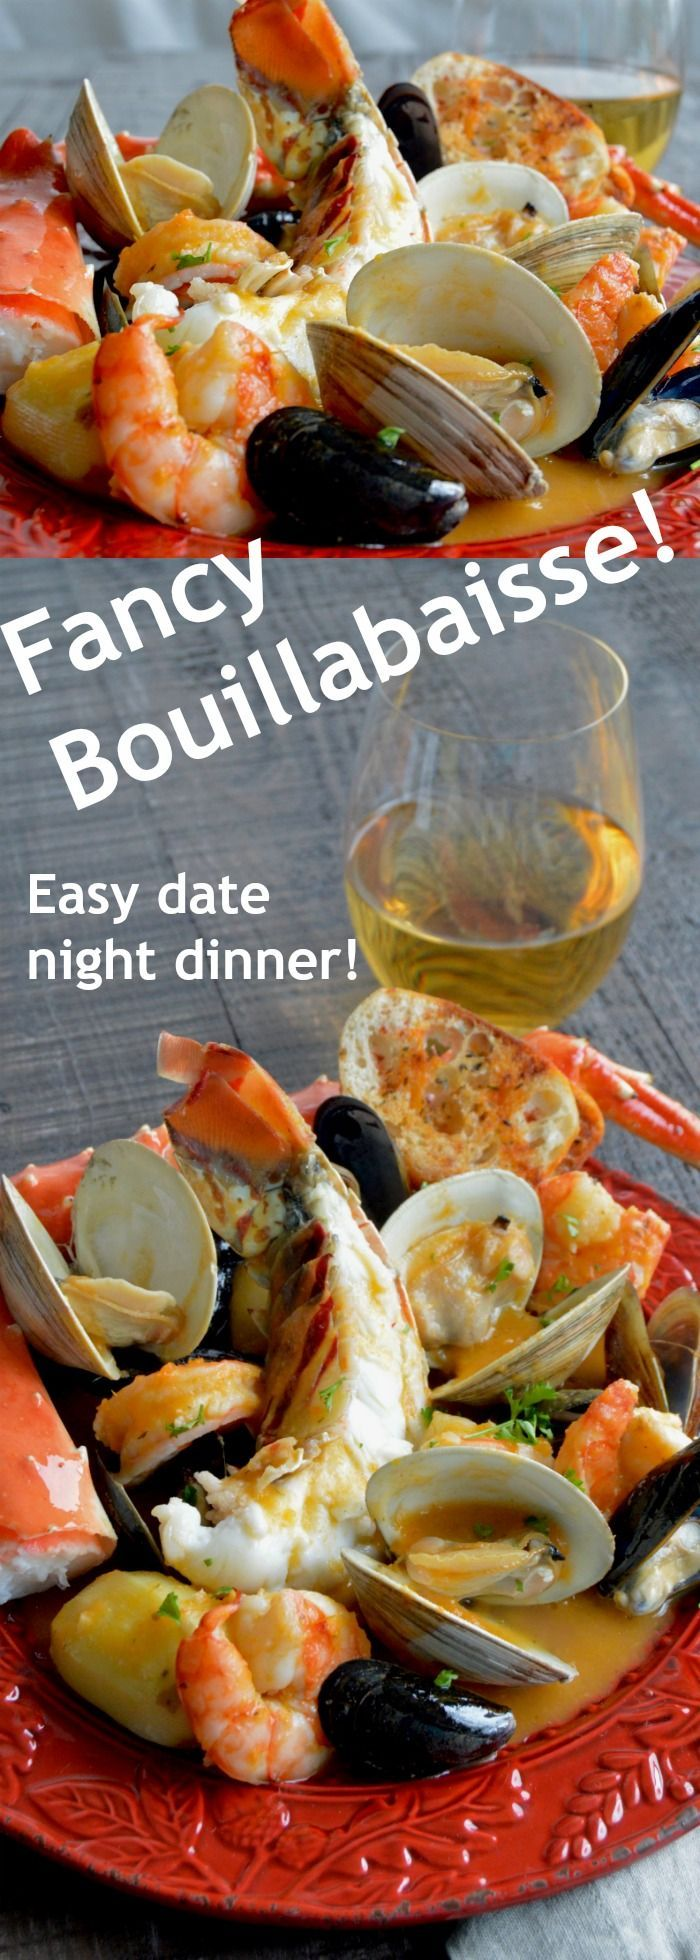 ancy shellfish, lobster crab, shrimp mussels and crab in a very flavorful homemade broth that can be on the table in less than 45 minutes! via /westviamidwest/